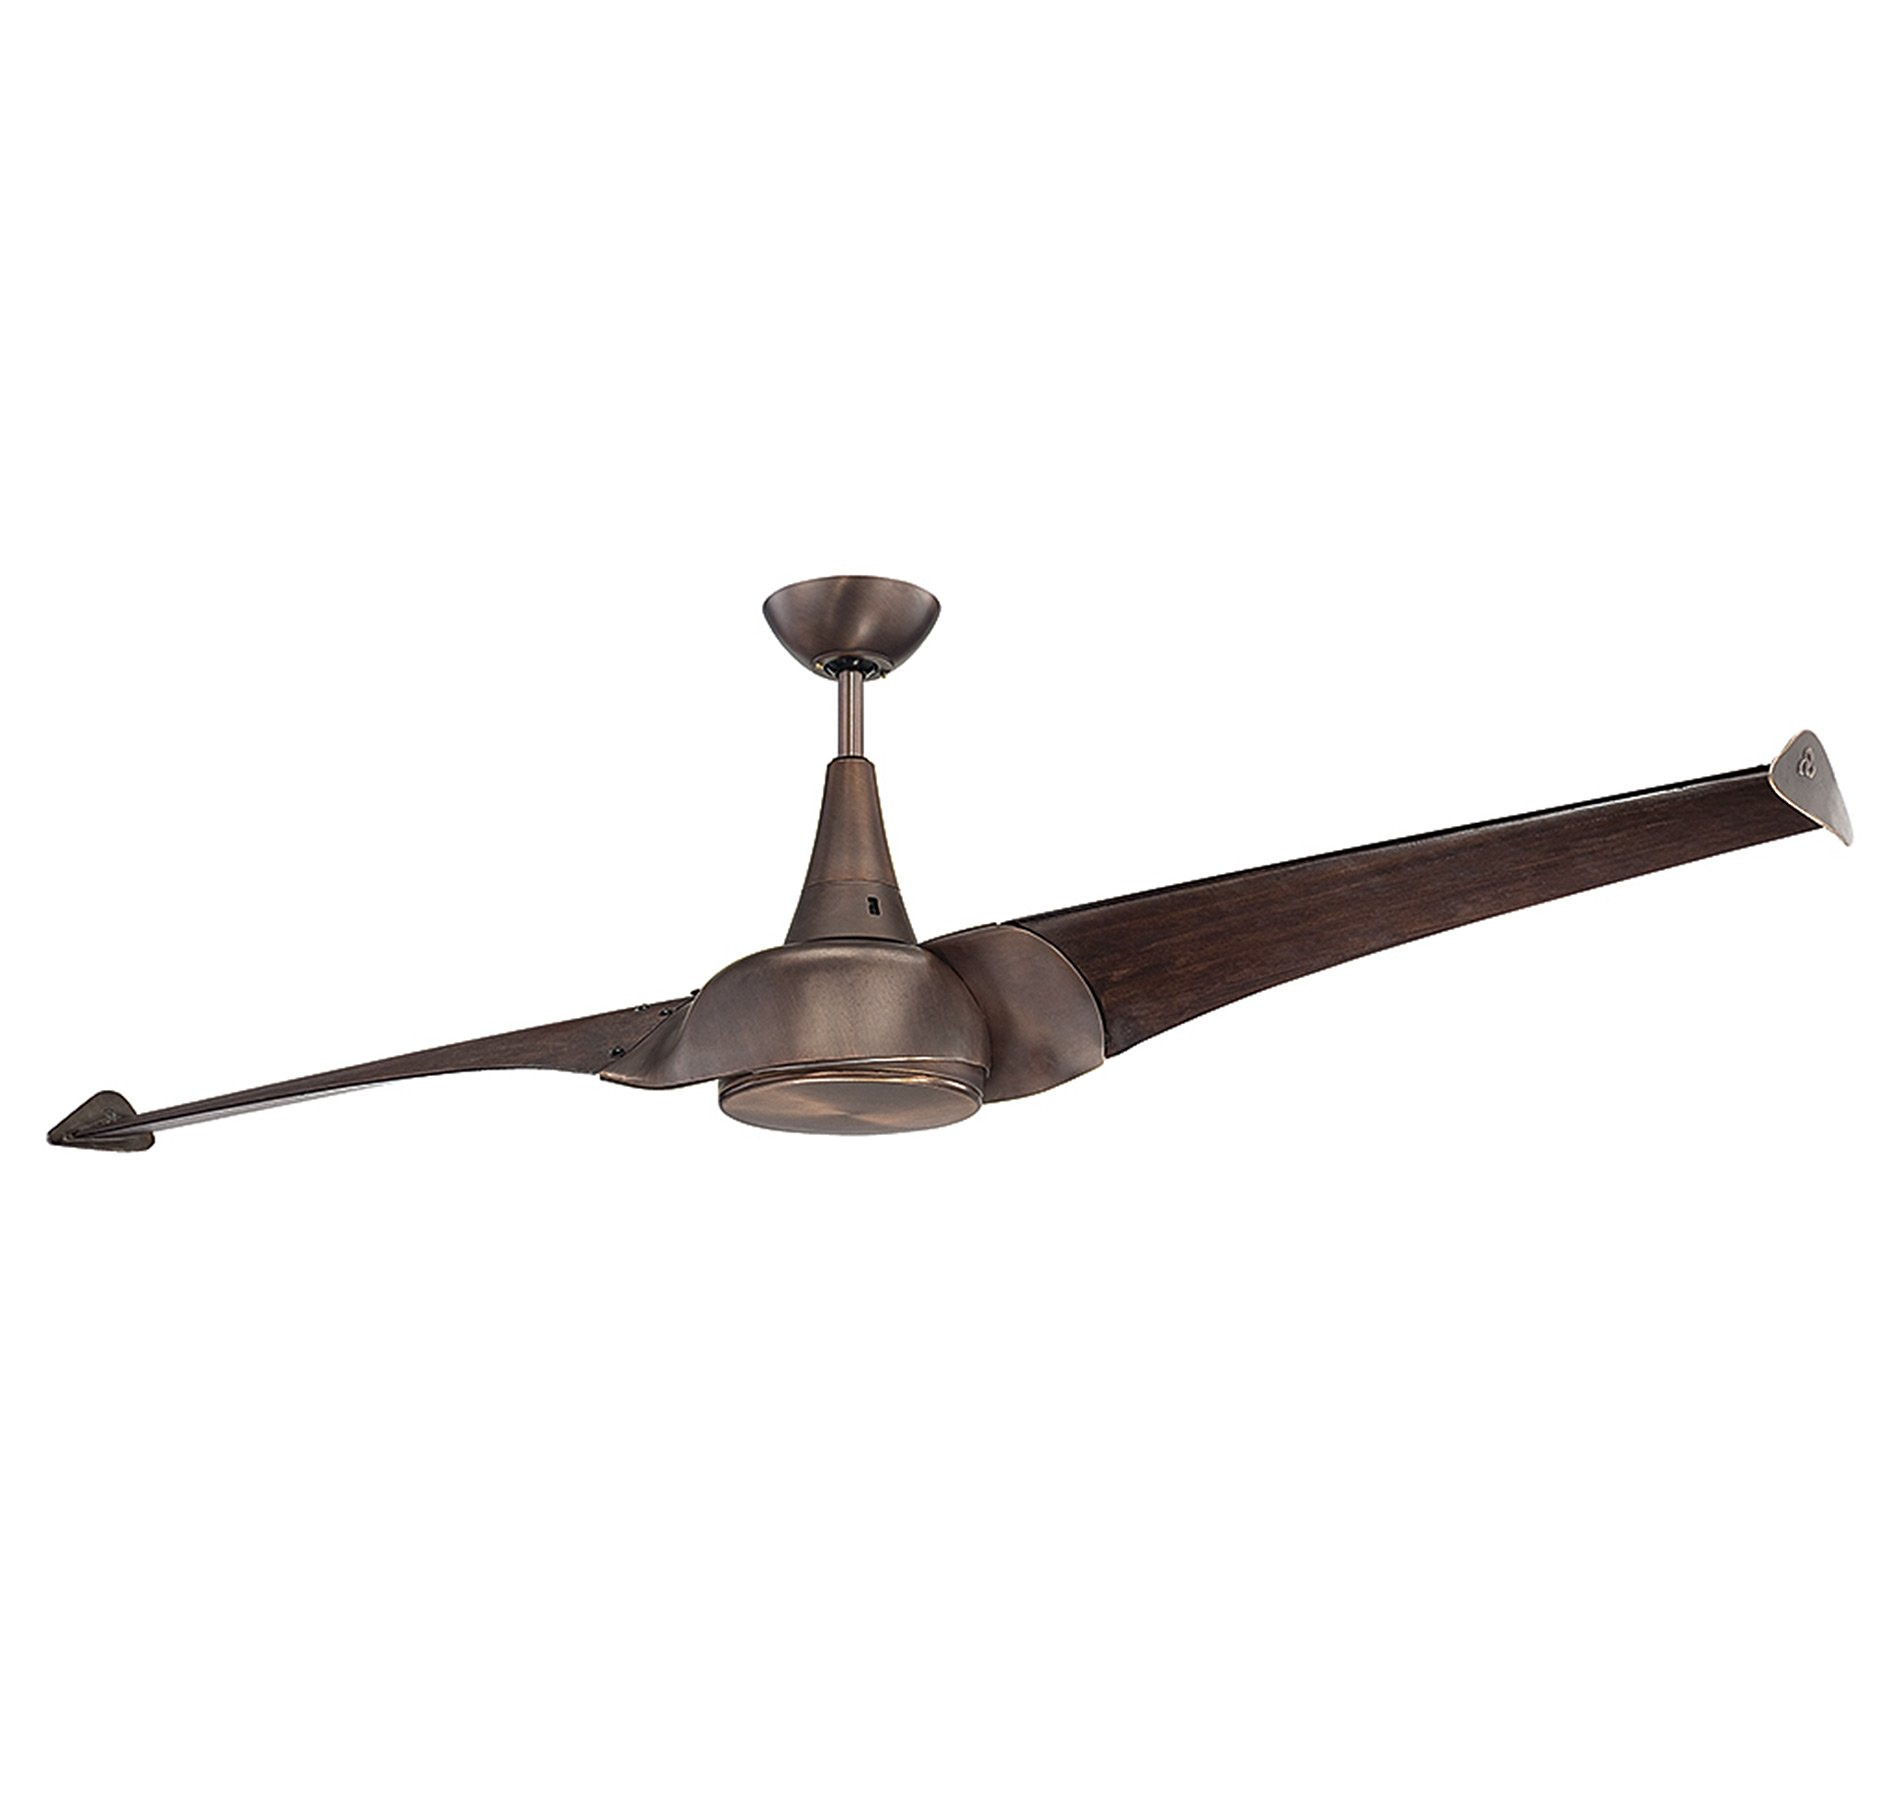 Ariel 2 Blade Ceiling Fan By Savoy House 68 818 2wa 35